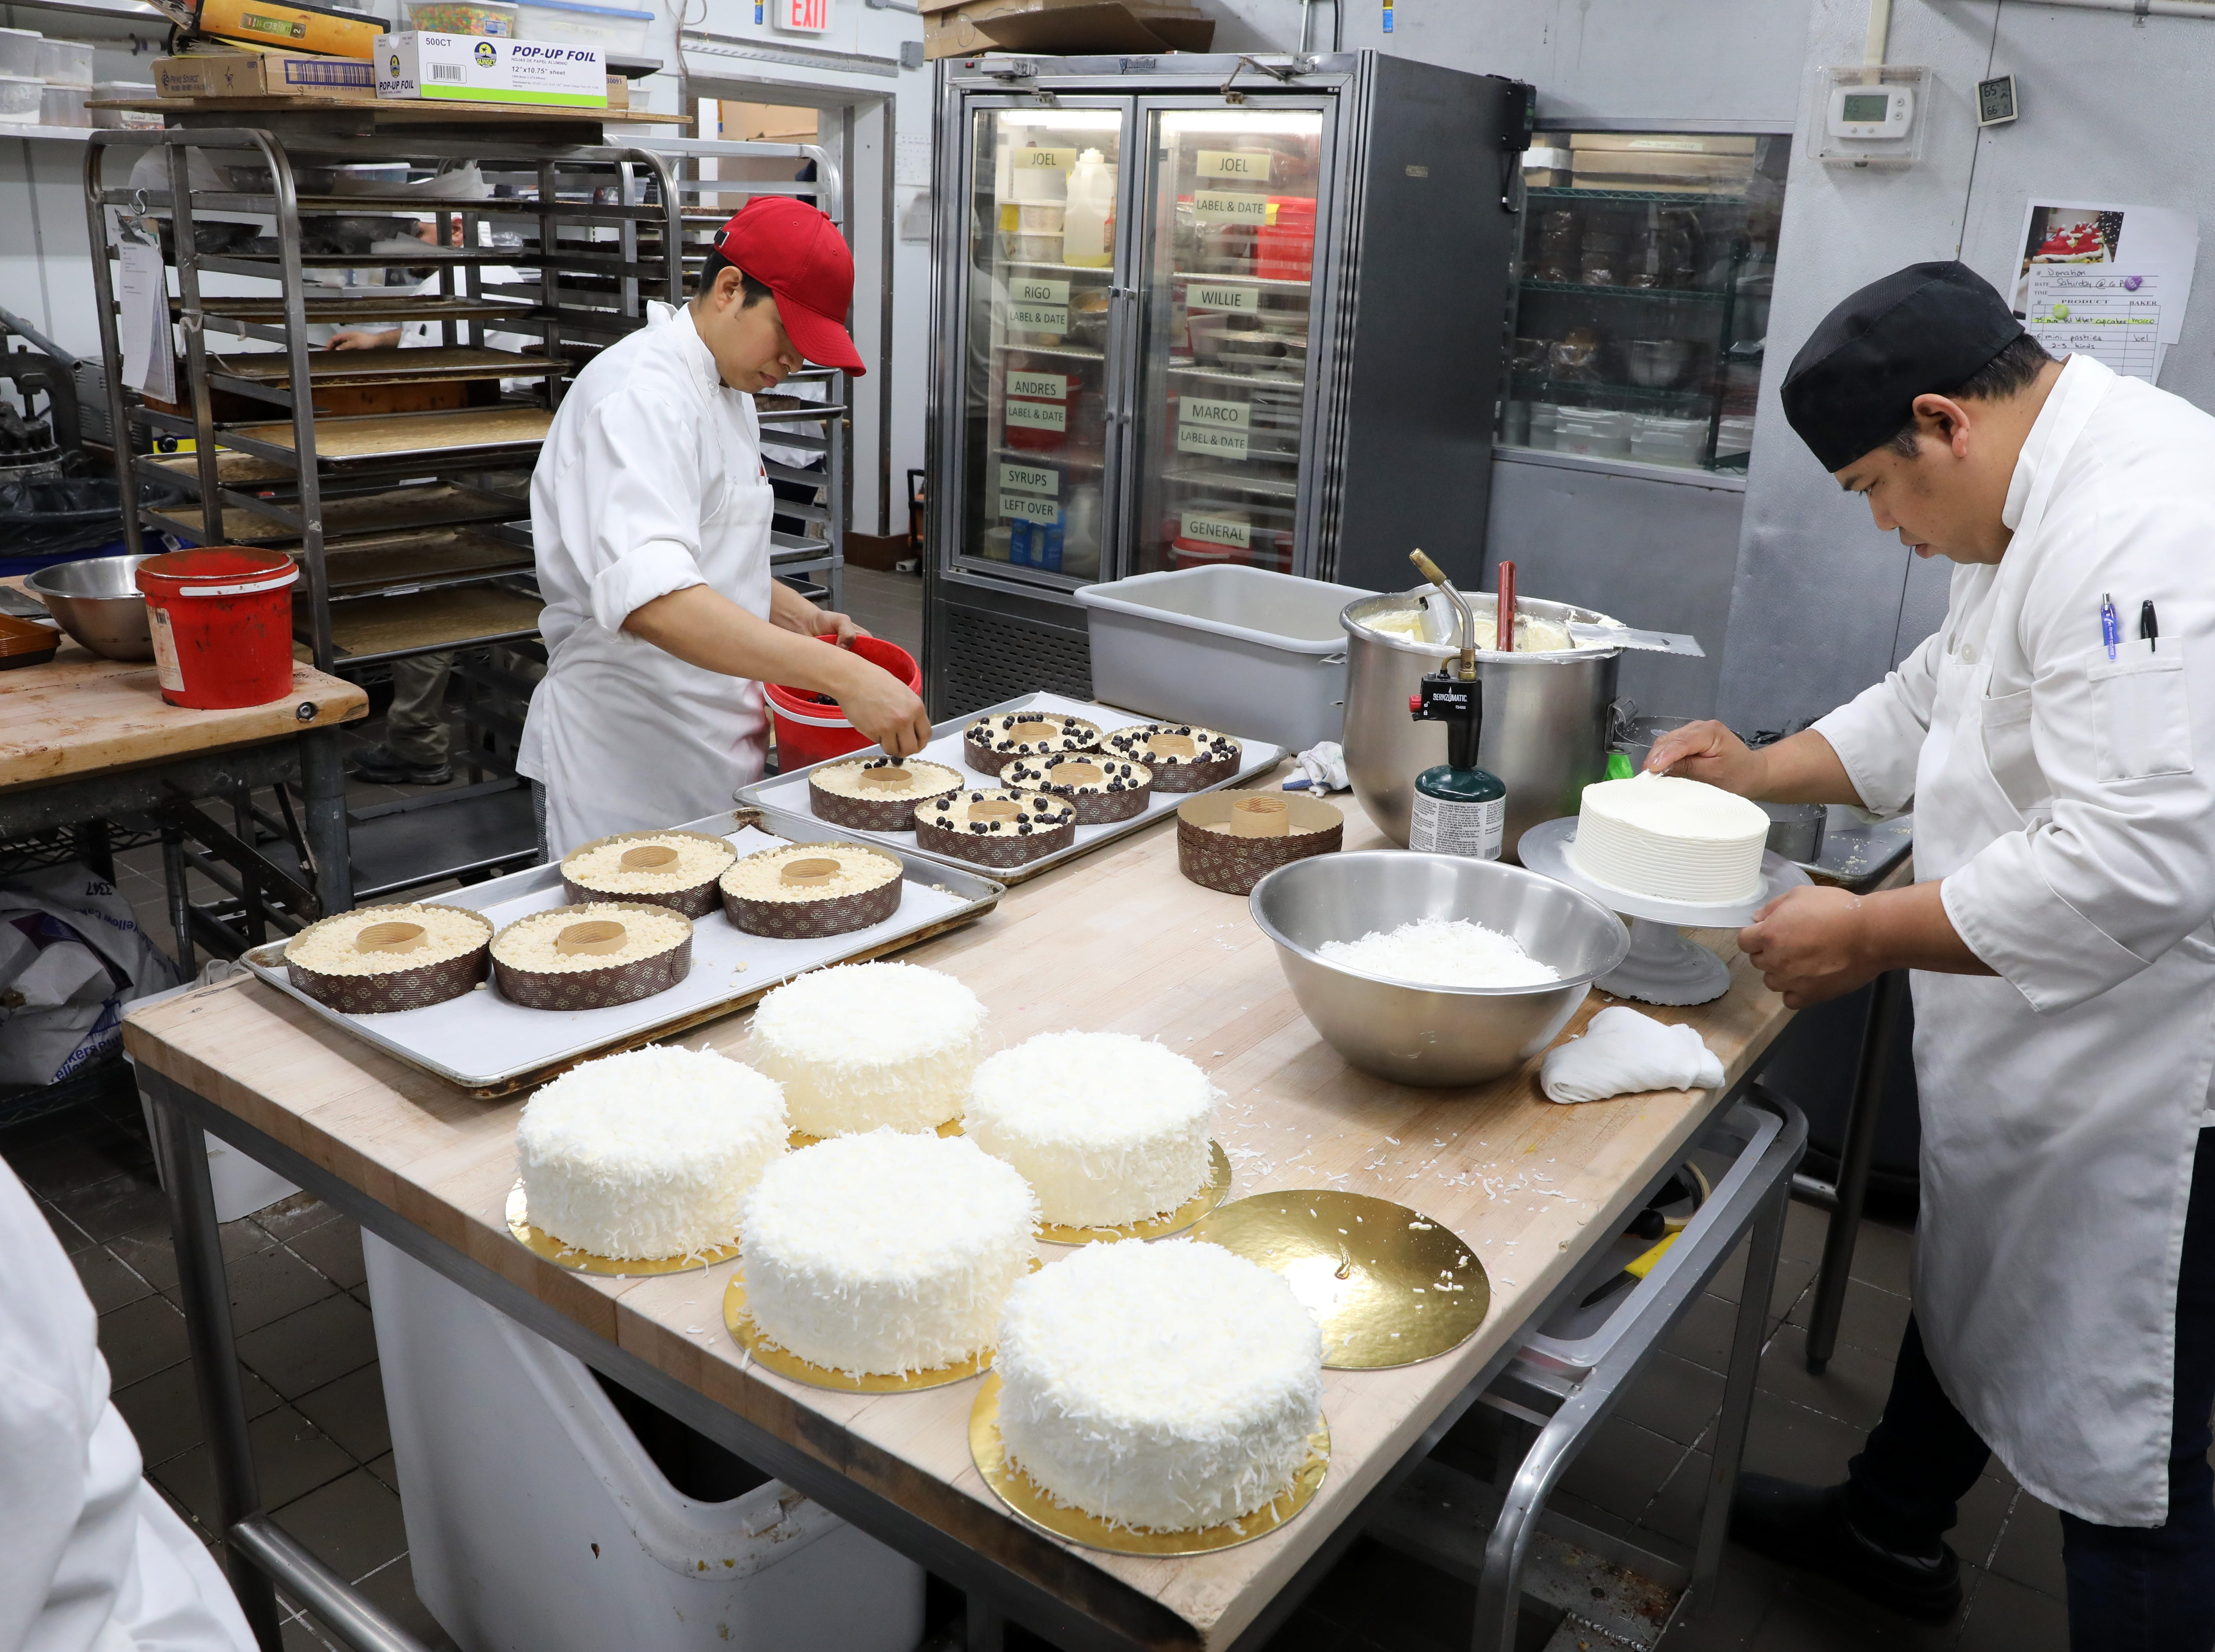 Marco Retana, left, prepares blueberry lemon coffee cake as his brother, Wilfredo Retana, decorates a coconut cake at Martine's Fine Bake Shoppe in Tuckahoe Nov. 29, 2018. The family bakery, which has a second location in Scarsdale, is celebrating their 10th anniversary in business.